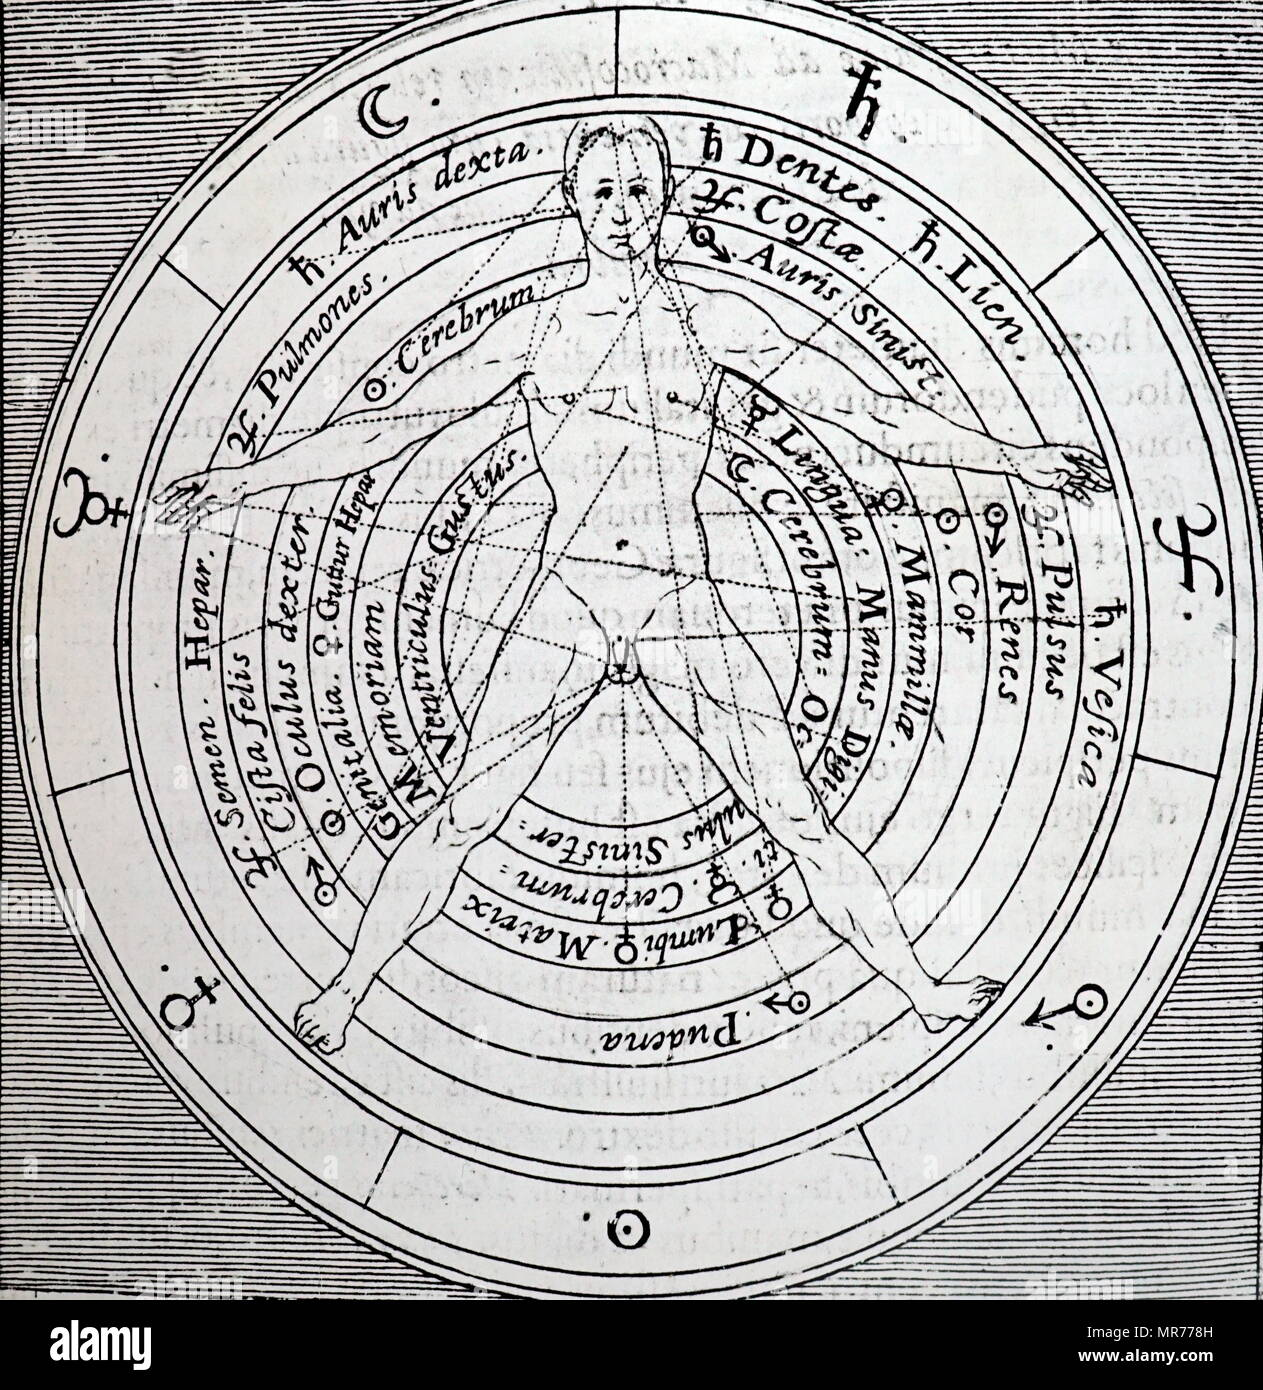 Woodblock engraving depicting the organs of the body and the planetary influences on them. Dated 17th century - Stock Image